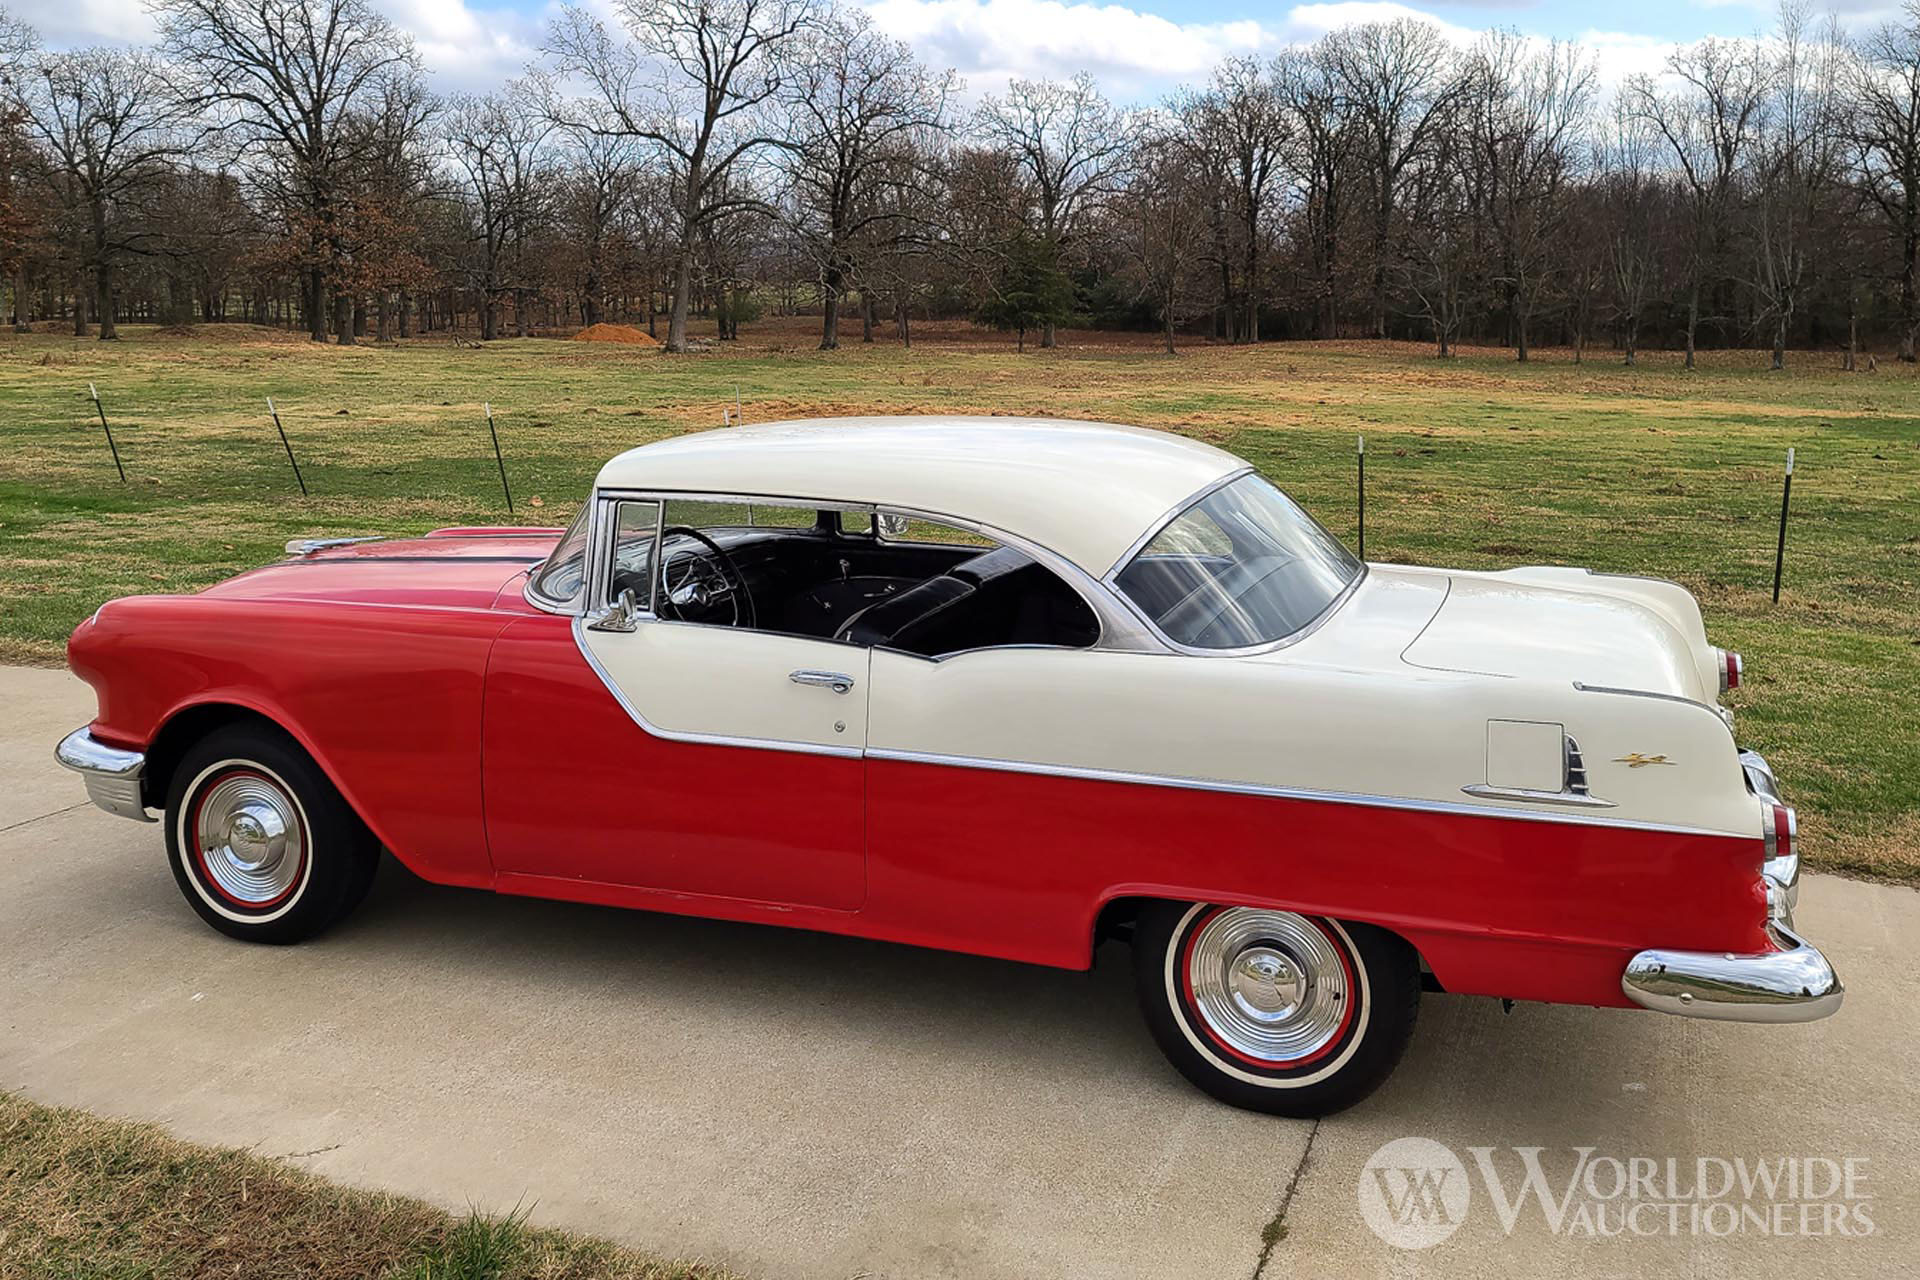 1955 Pontiac Chieftain Catalina Hardtop